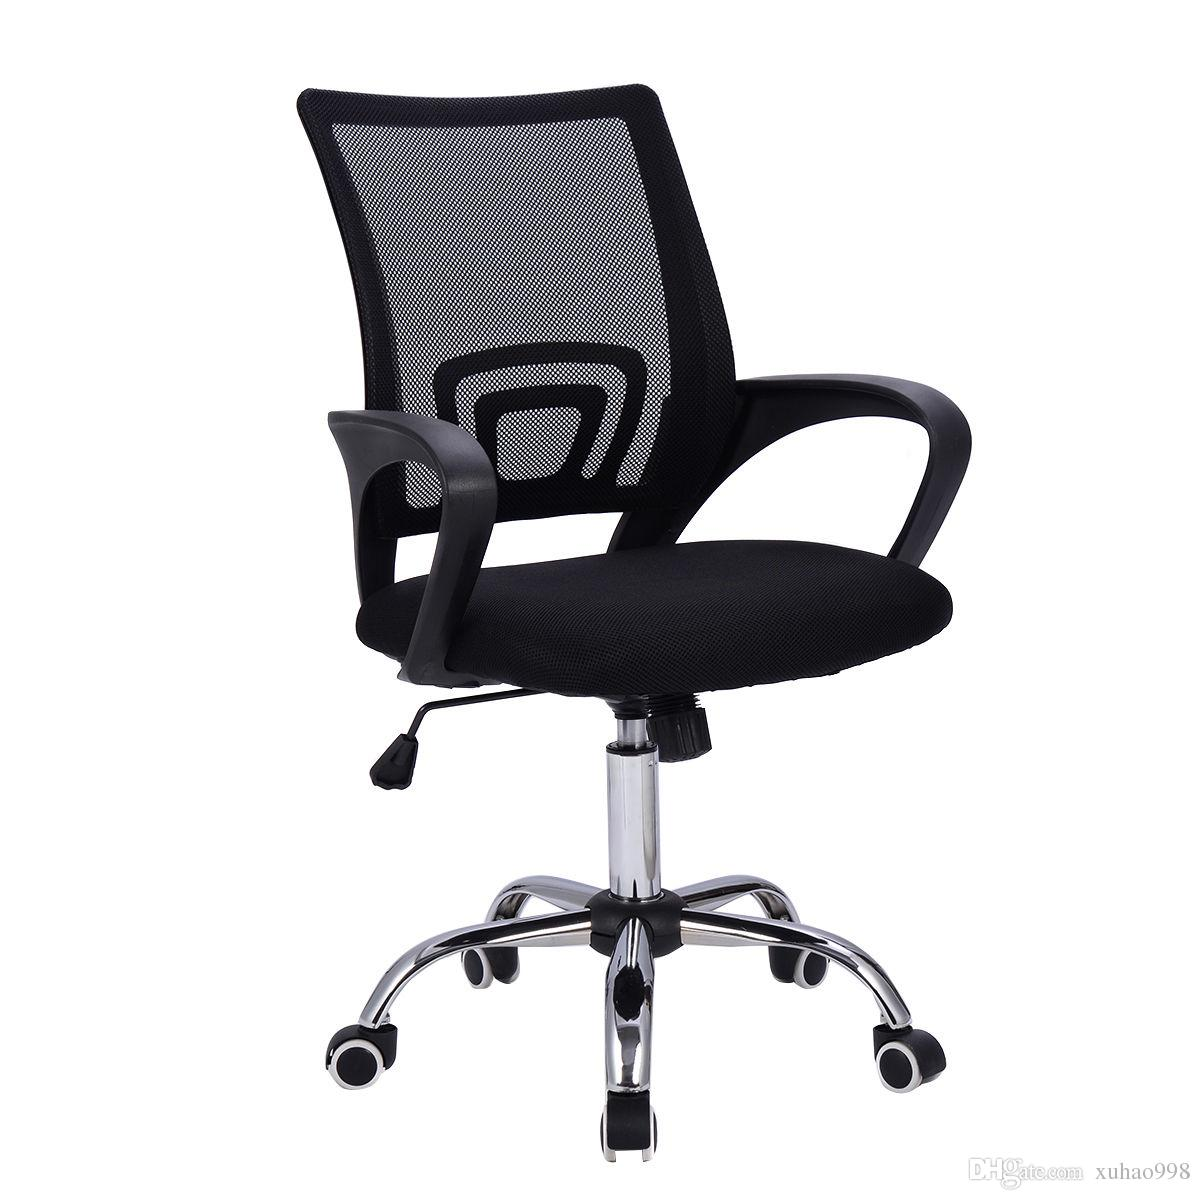 2018 Modern Mesh Mid Back Office Chair Computer Desk Task Ergonomic Swivel Black New From Xuhao998 42 22 Dhgate Com